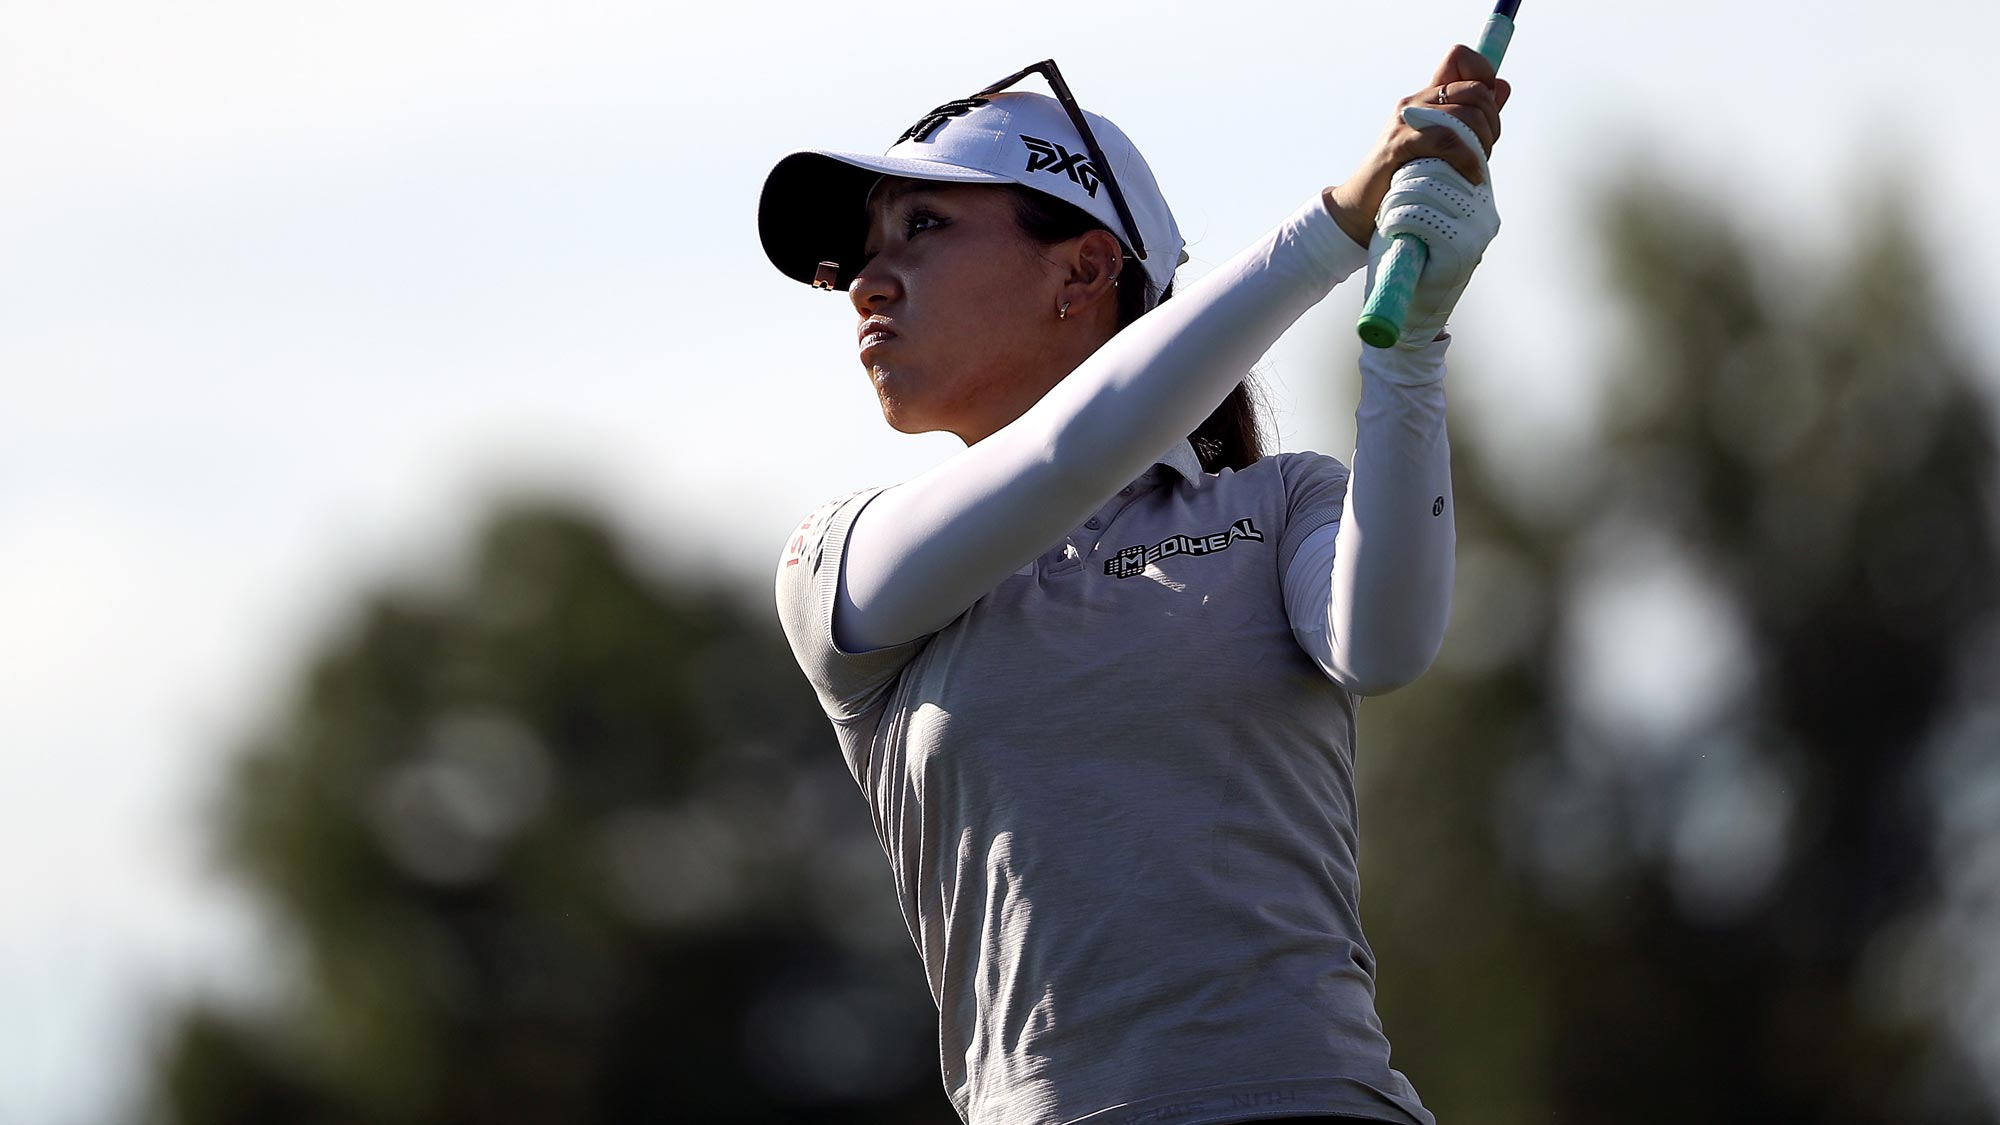 Lydia Ko of New Zealand plays her shot from the 15th tee during the first round of the LPGA Drive On Championship